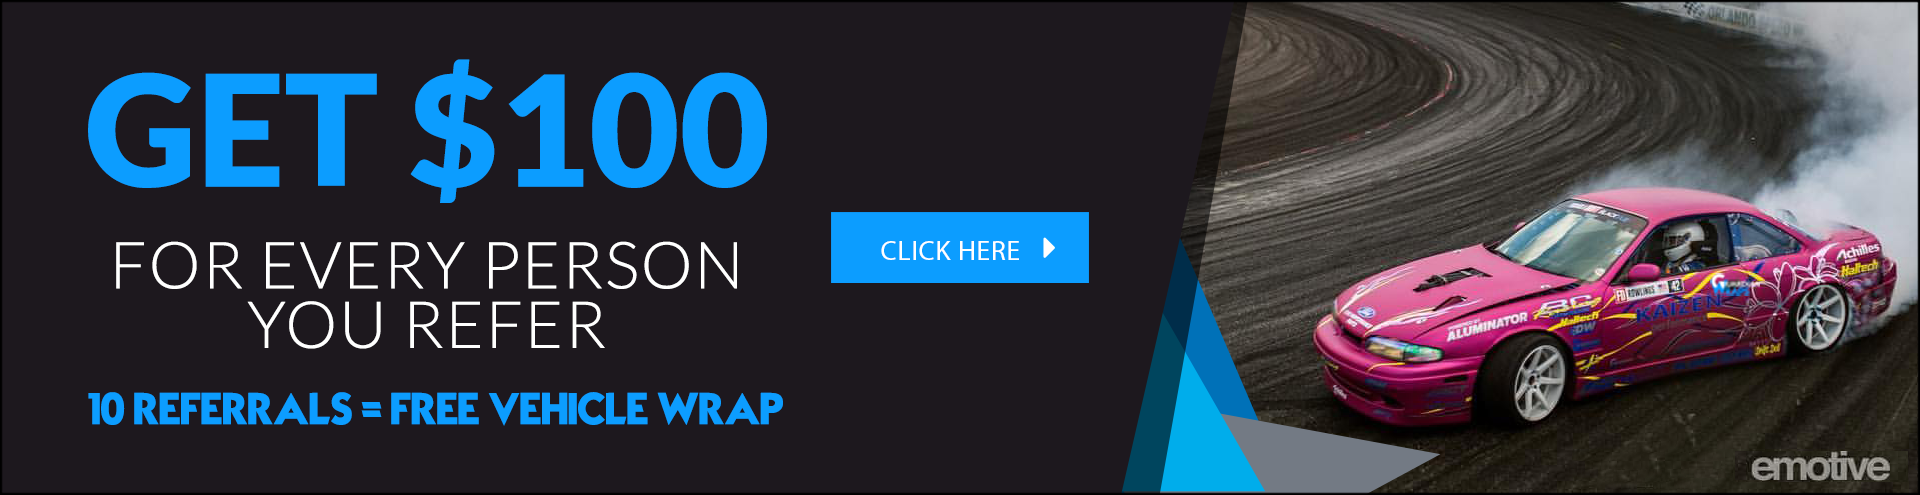 Referral Banner Ad.png